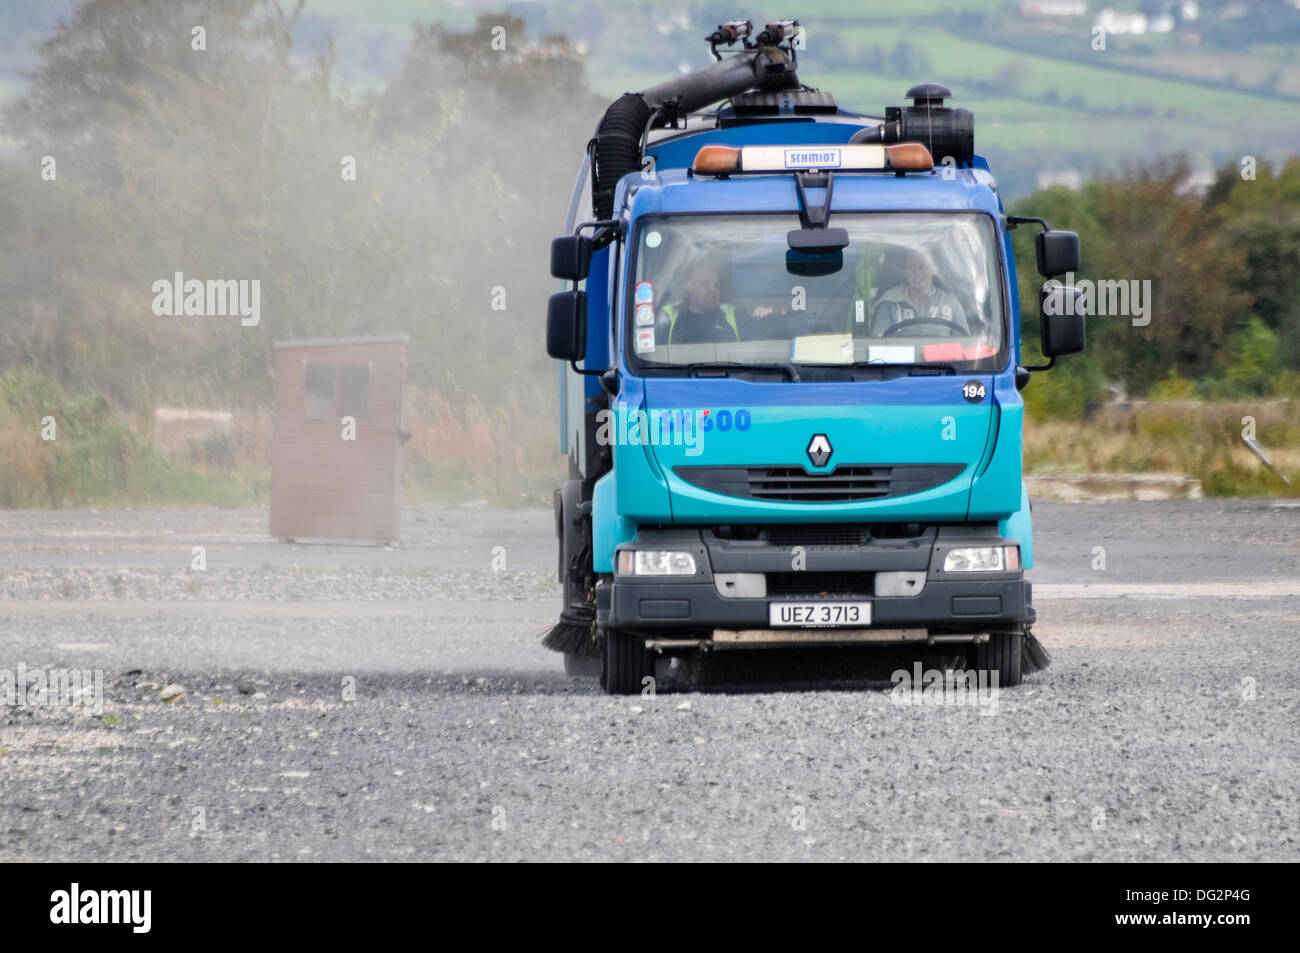 A Schmidt road sweeper on a Renault 240 7.5 tonne body - Stock Image